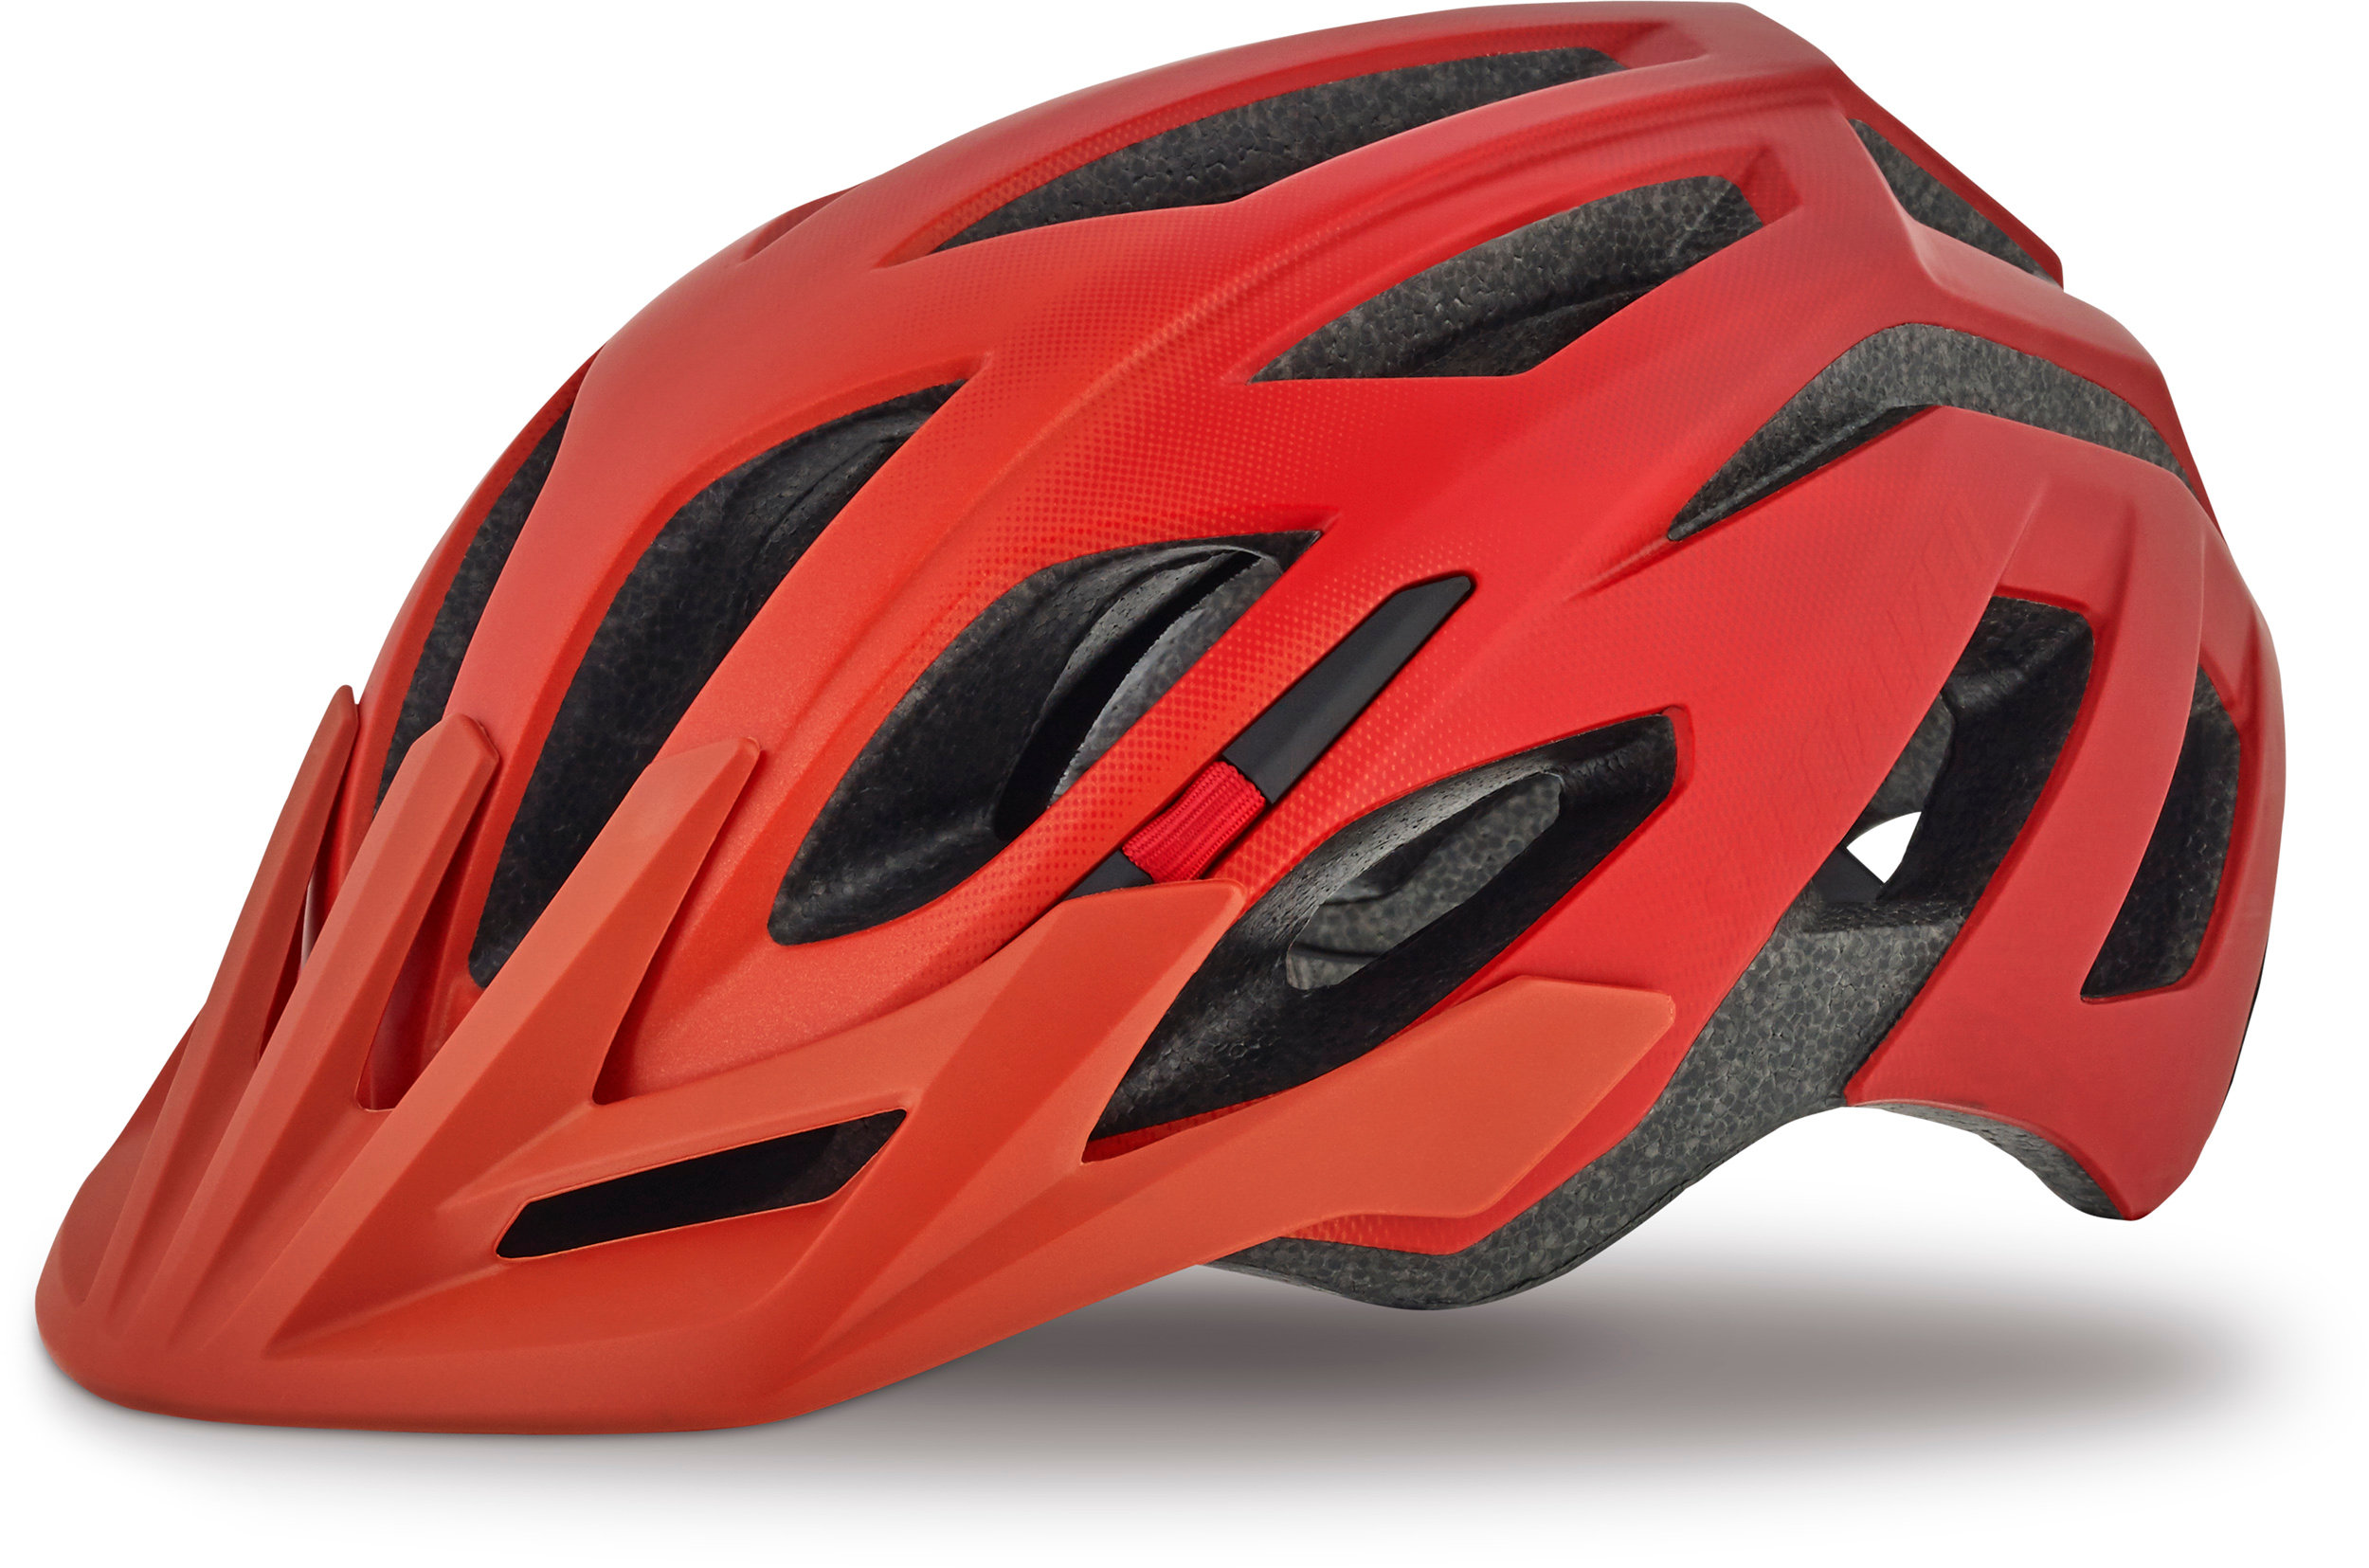 SPECIALIZED TACTIC II HLMT CE RED FADE L - SPECIALIZED TACTIC II HLMT CE RED FADE L